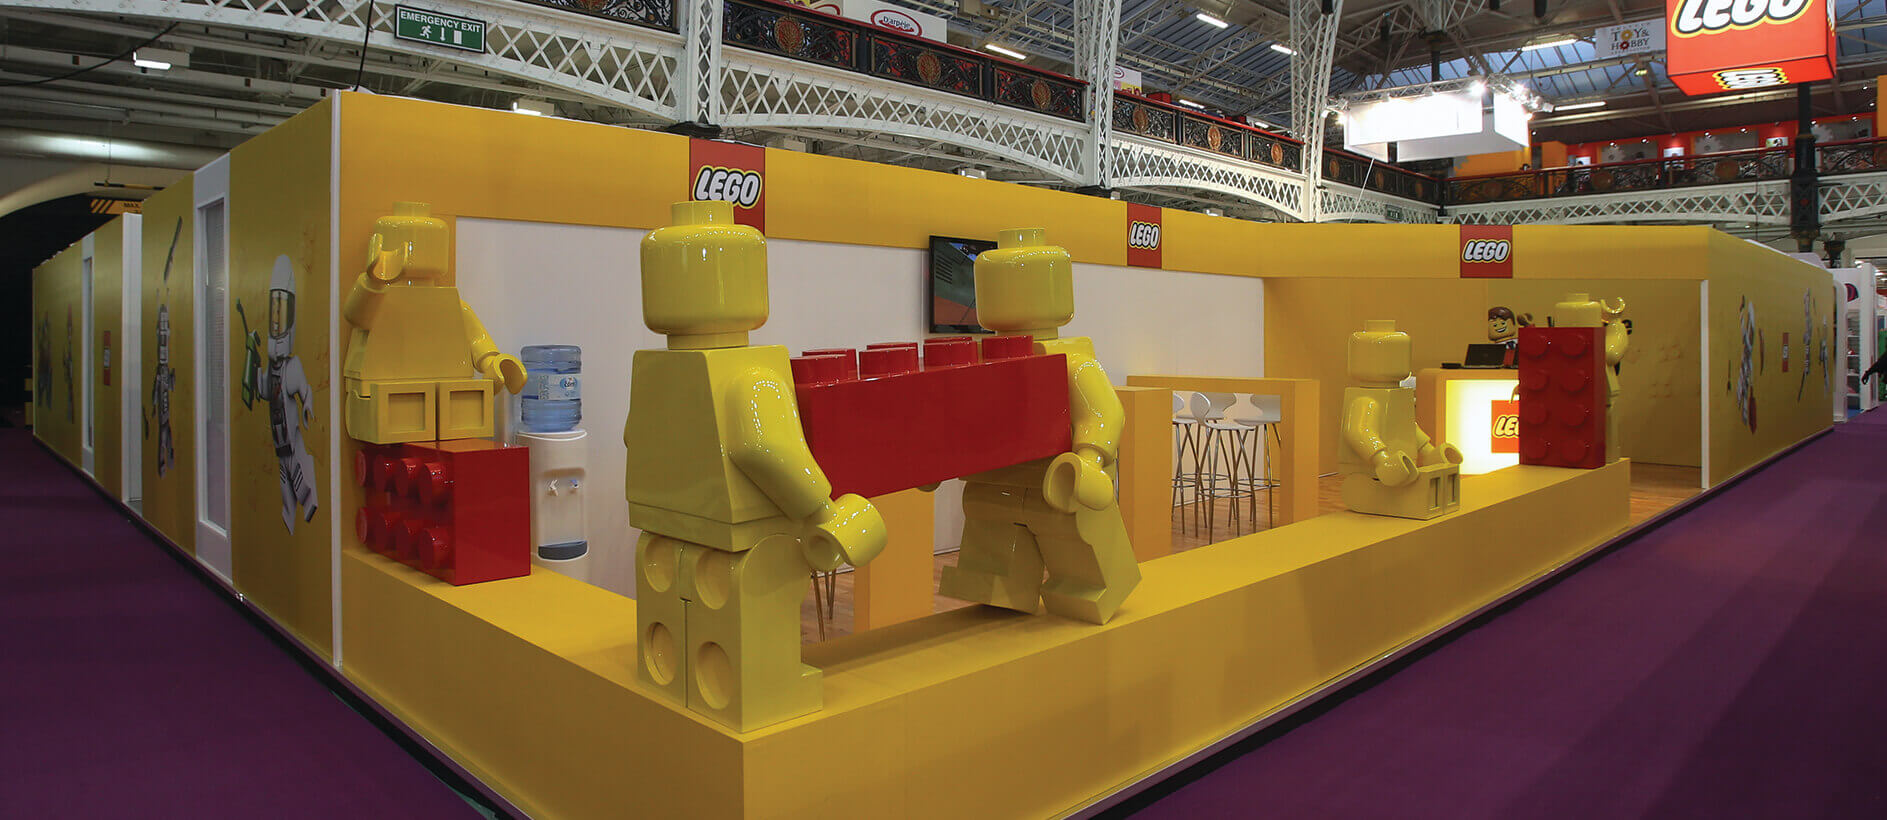 branded exhibition stand for Lego